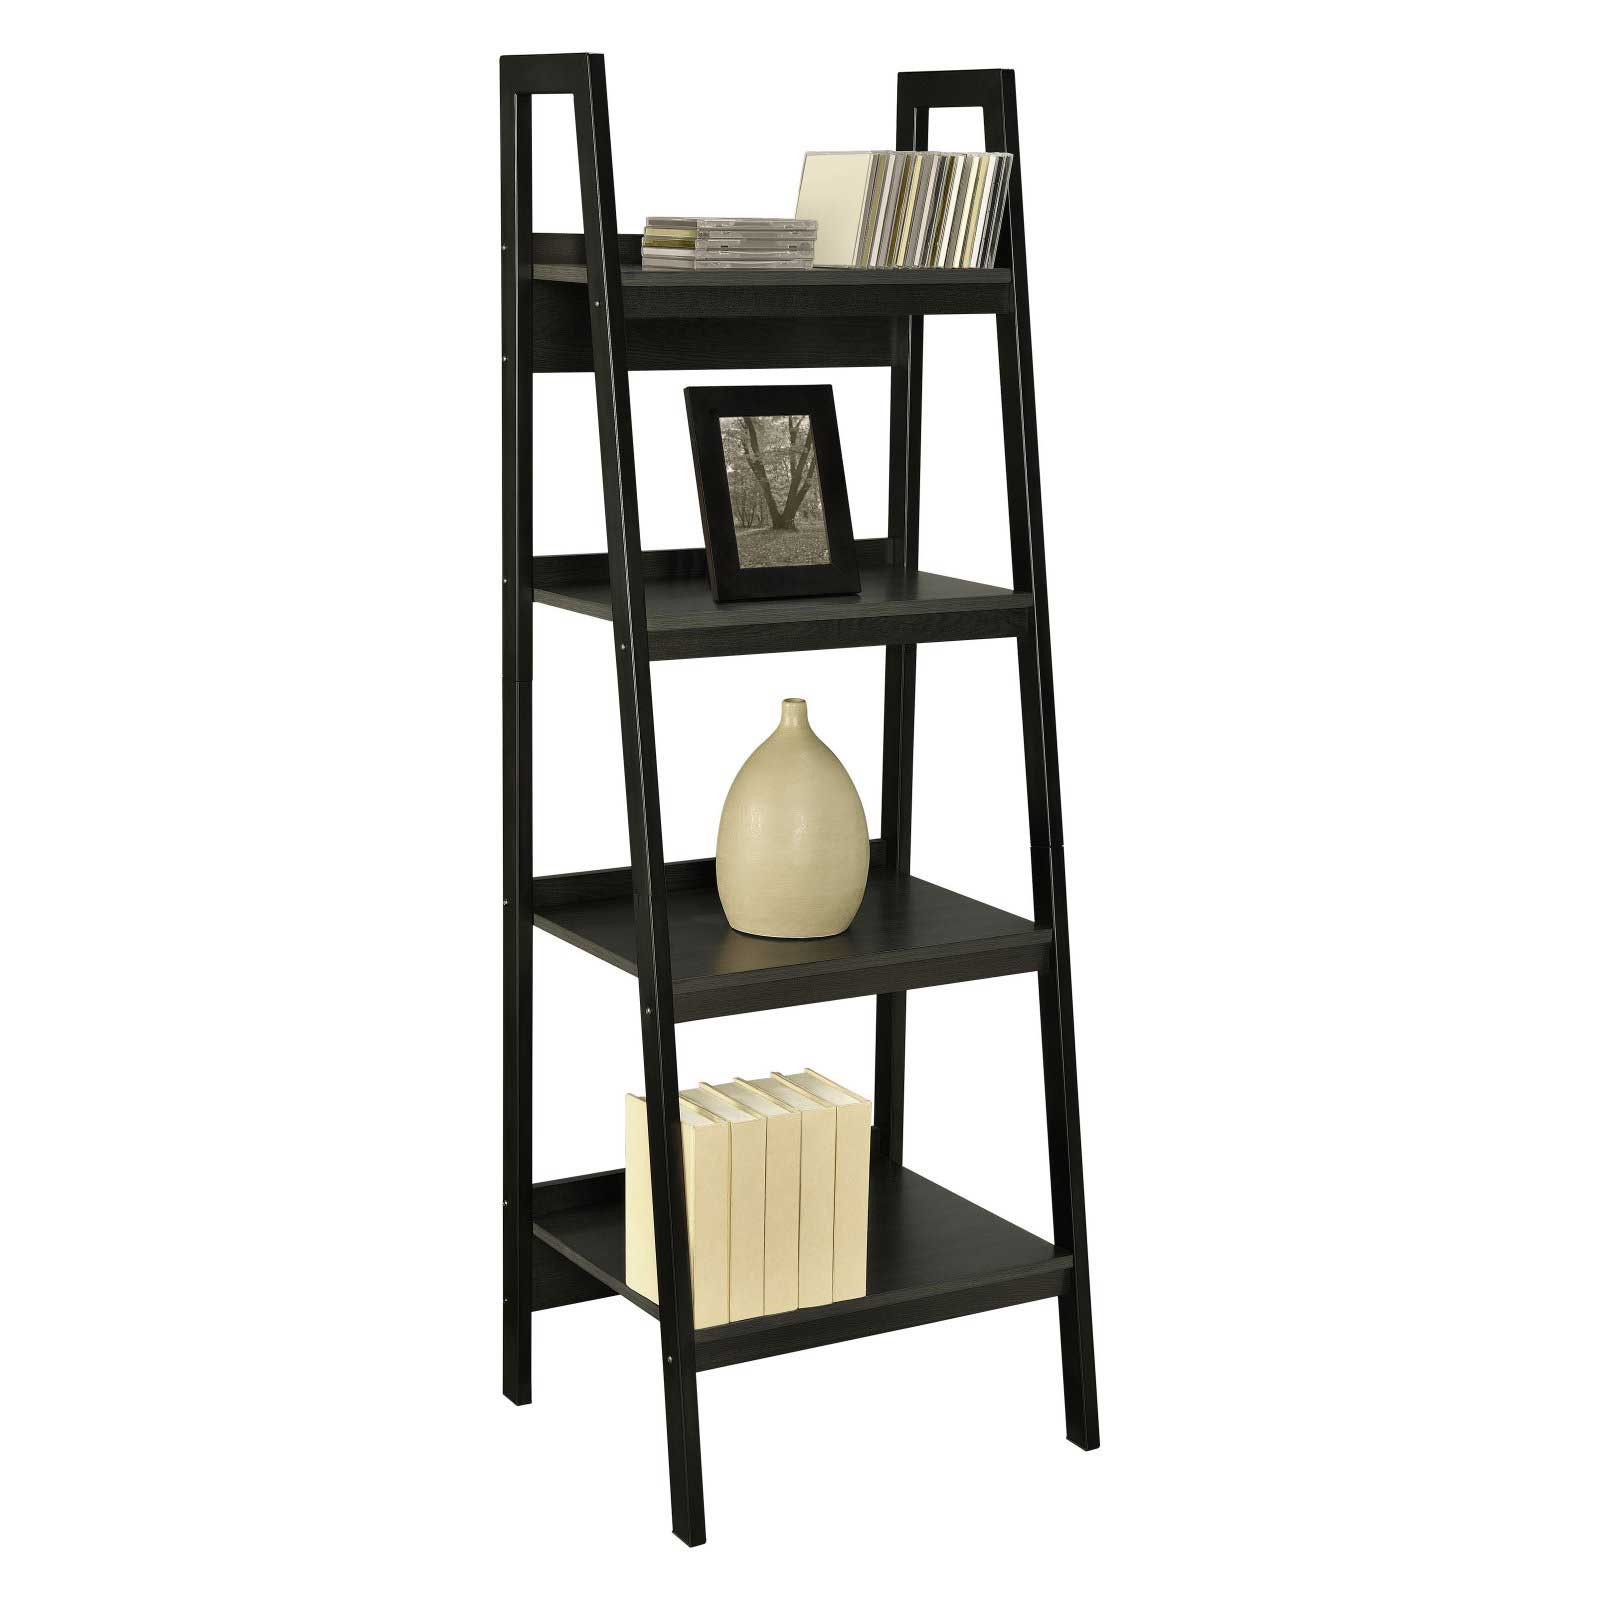 plans for leaning bookshelf – furnitureplans